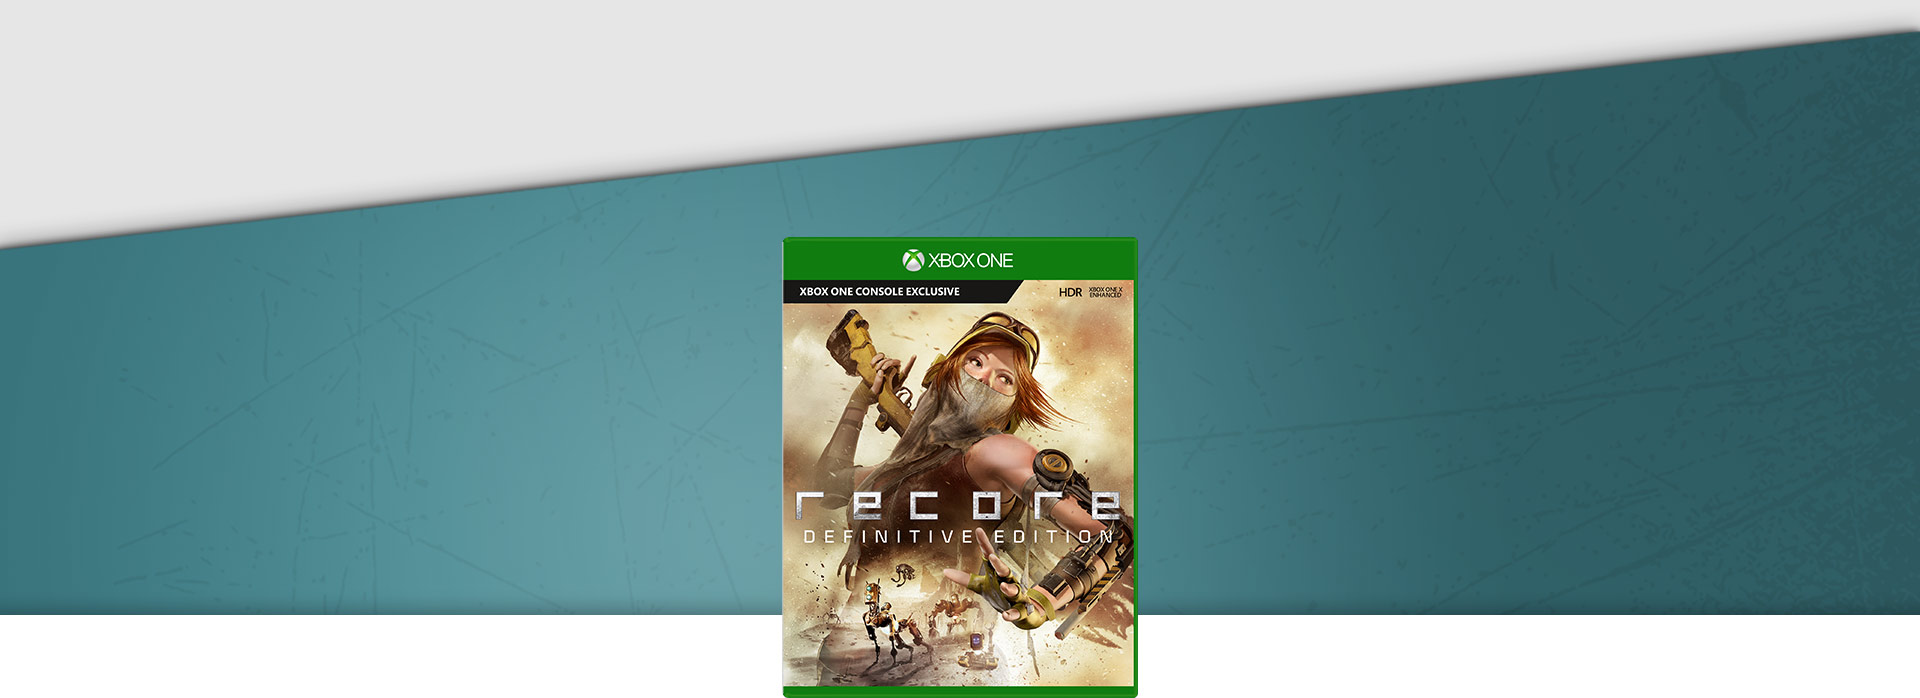 ReCore box shot